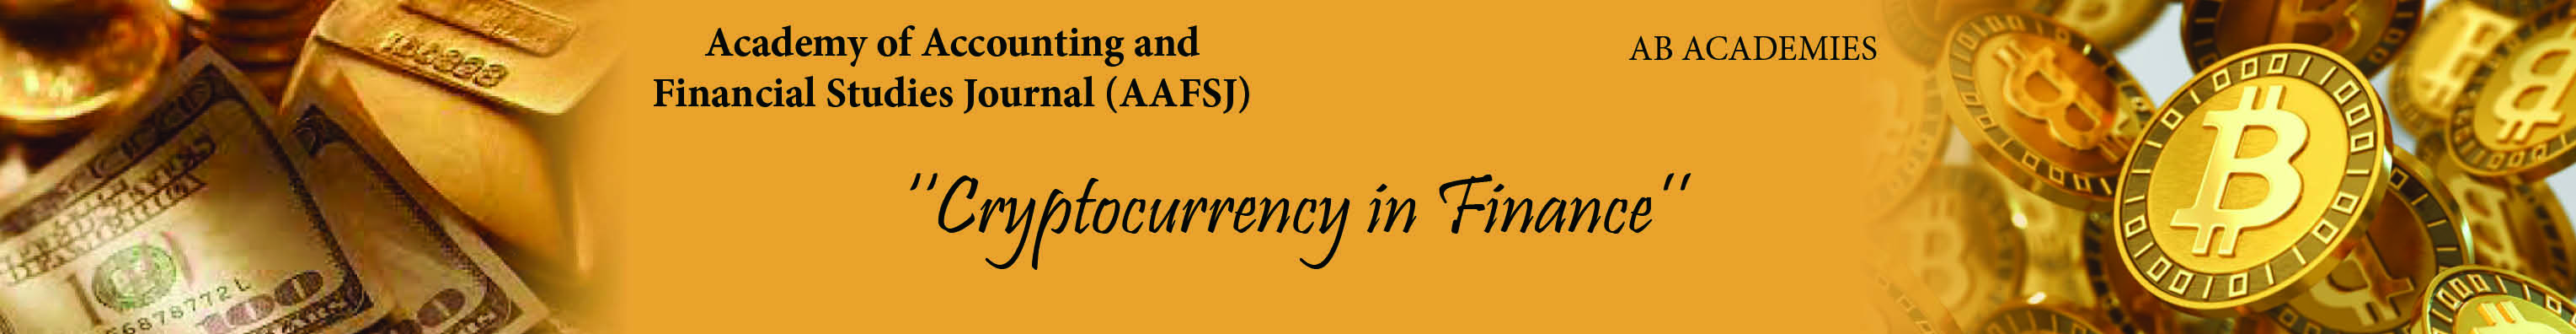 15-cryptocurrency-in-finance.jpg